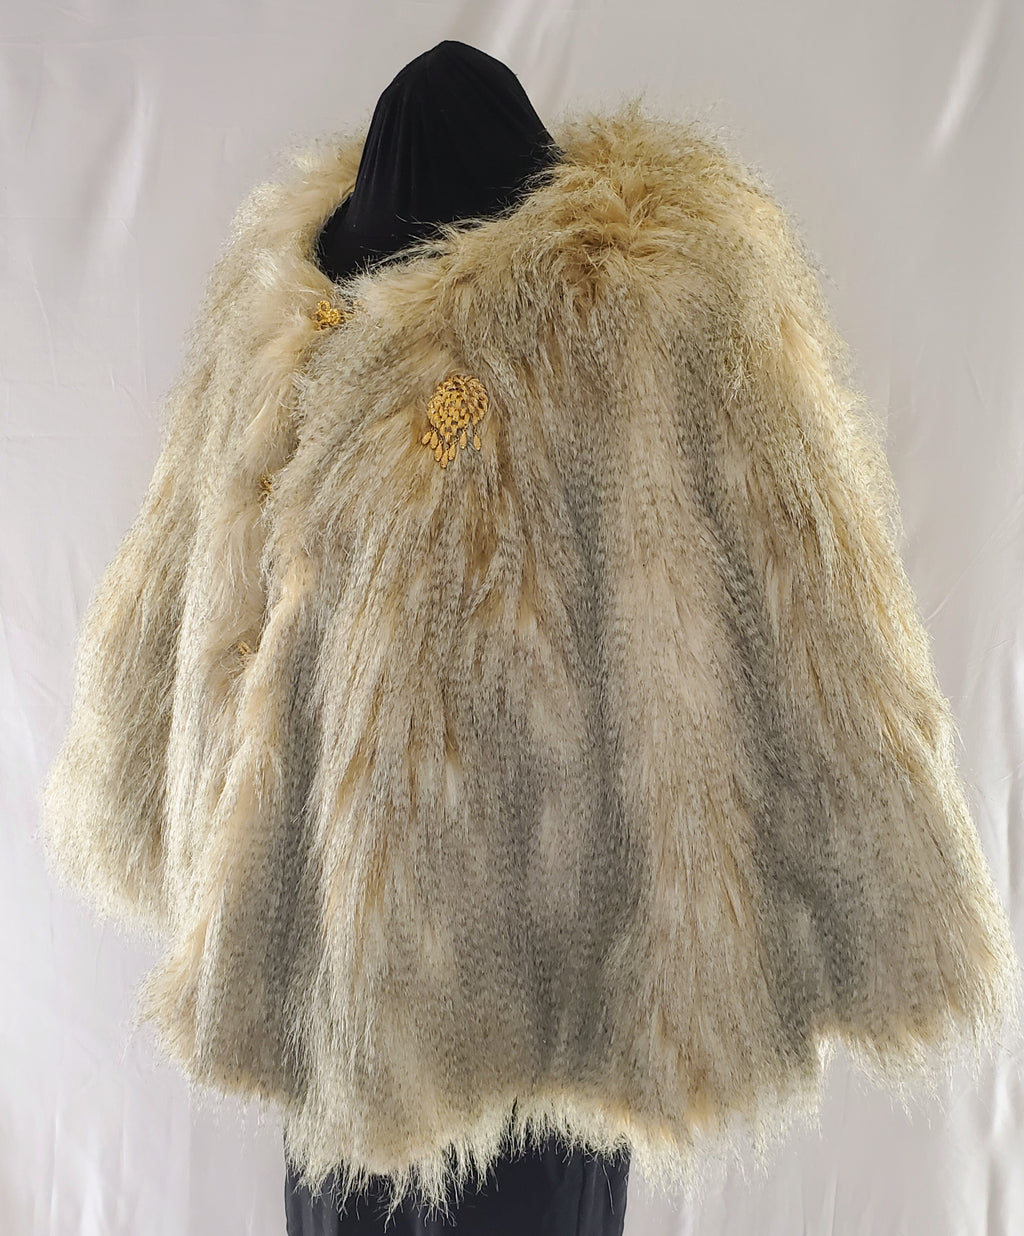 Gold and Tan Faux Fur Cape with vintage gold clasps and broach side view closed